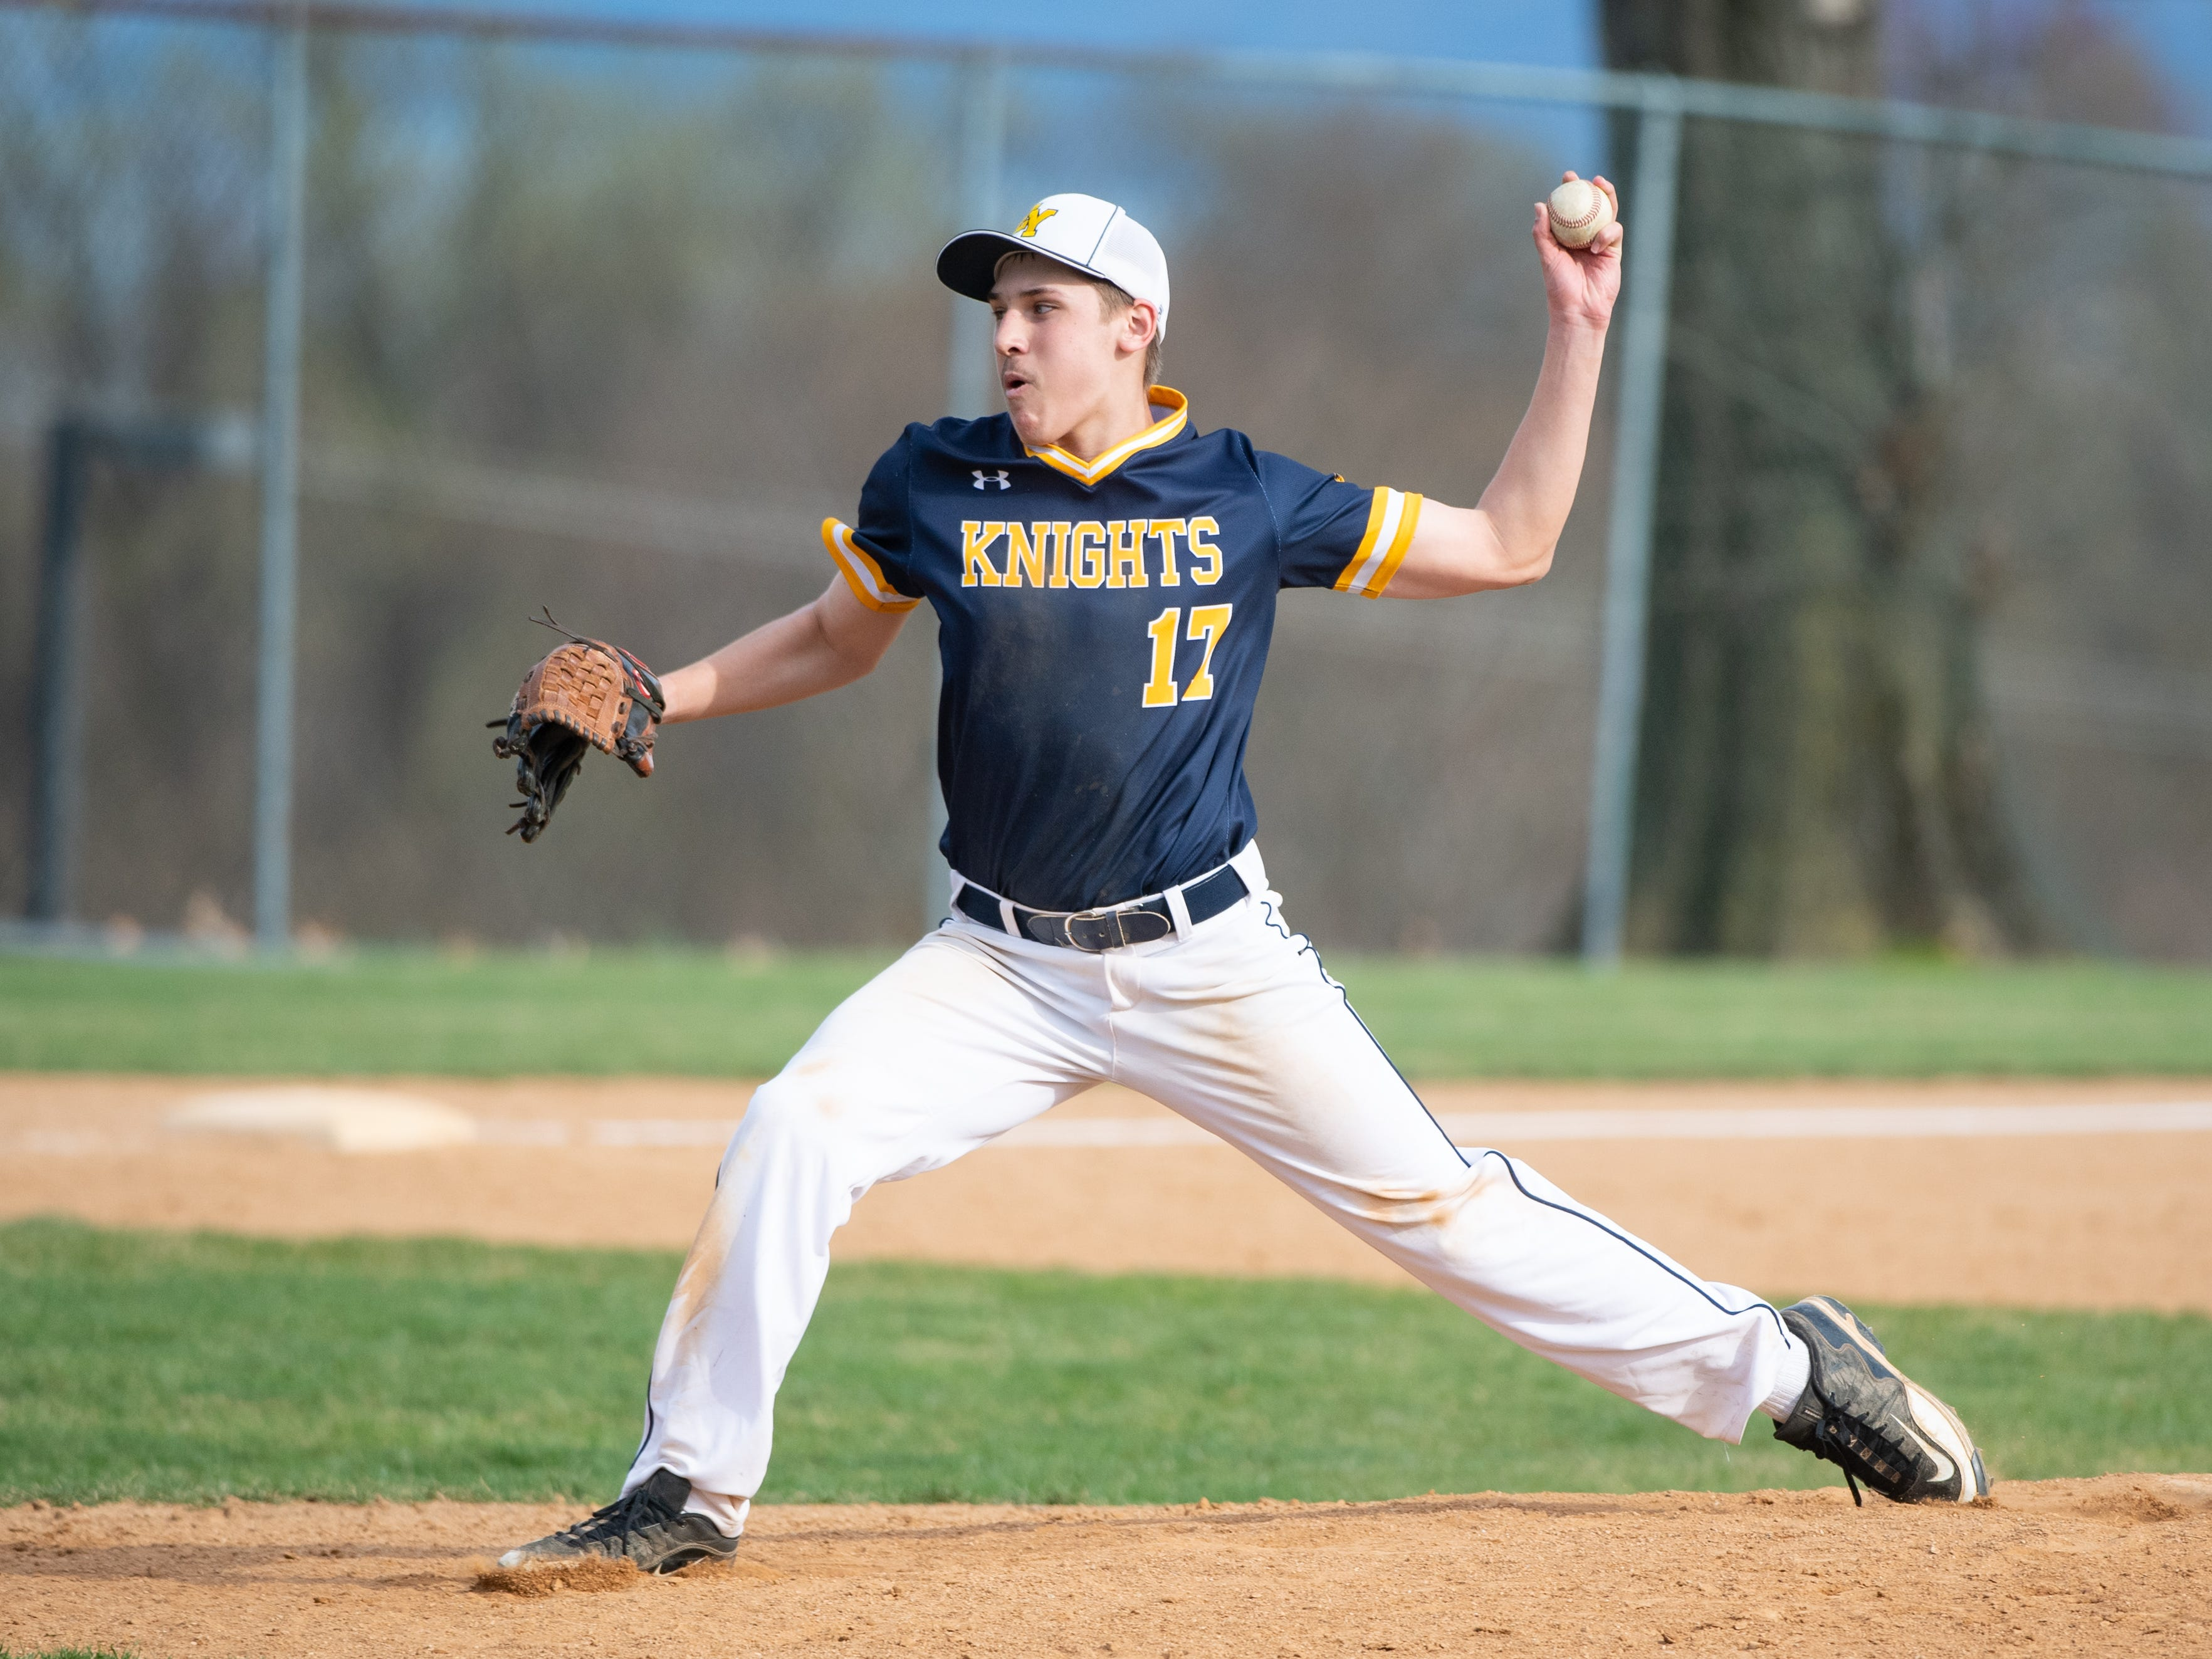 Evan Rishell (17) pitches during the baseball game between Eastern York and Kennard-Dale, April 10, 2019 at Eastern York High School. The Golden Knights defeated the Rams 8 to 1.